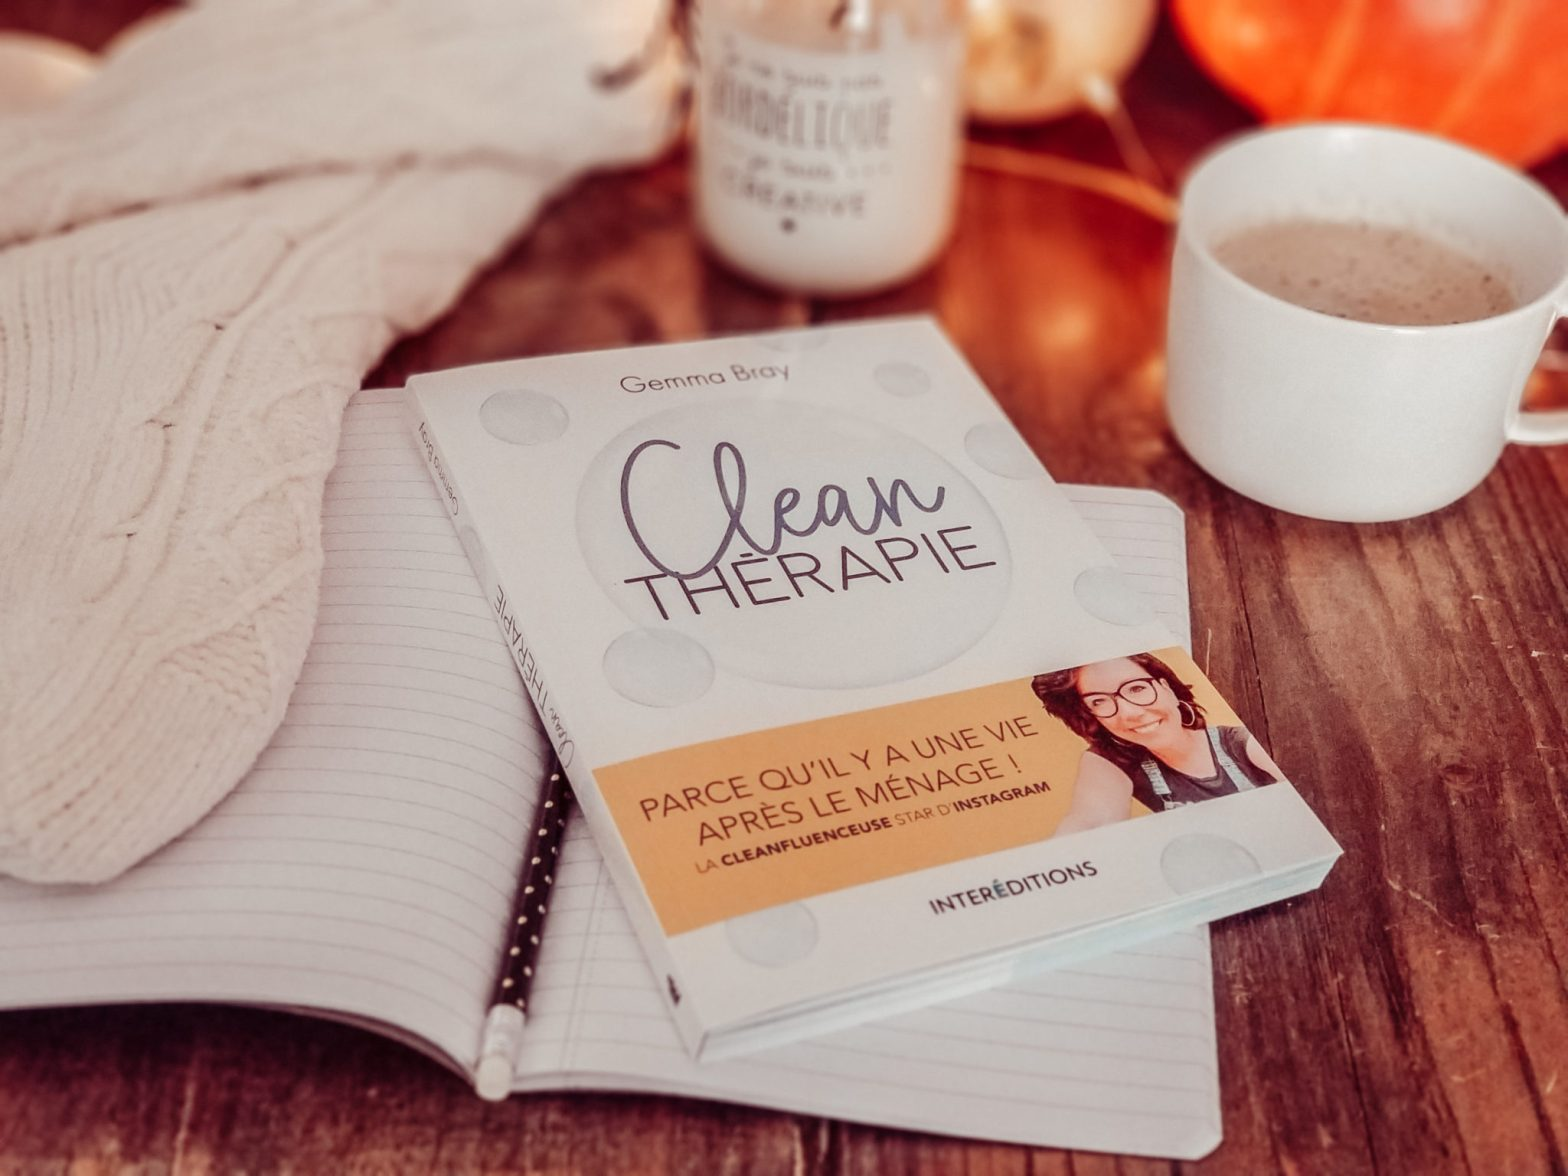 Gemma Bray -Clean Therapie